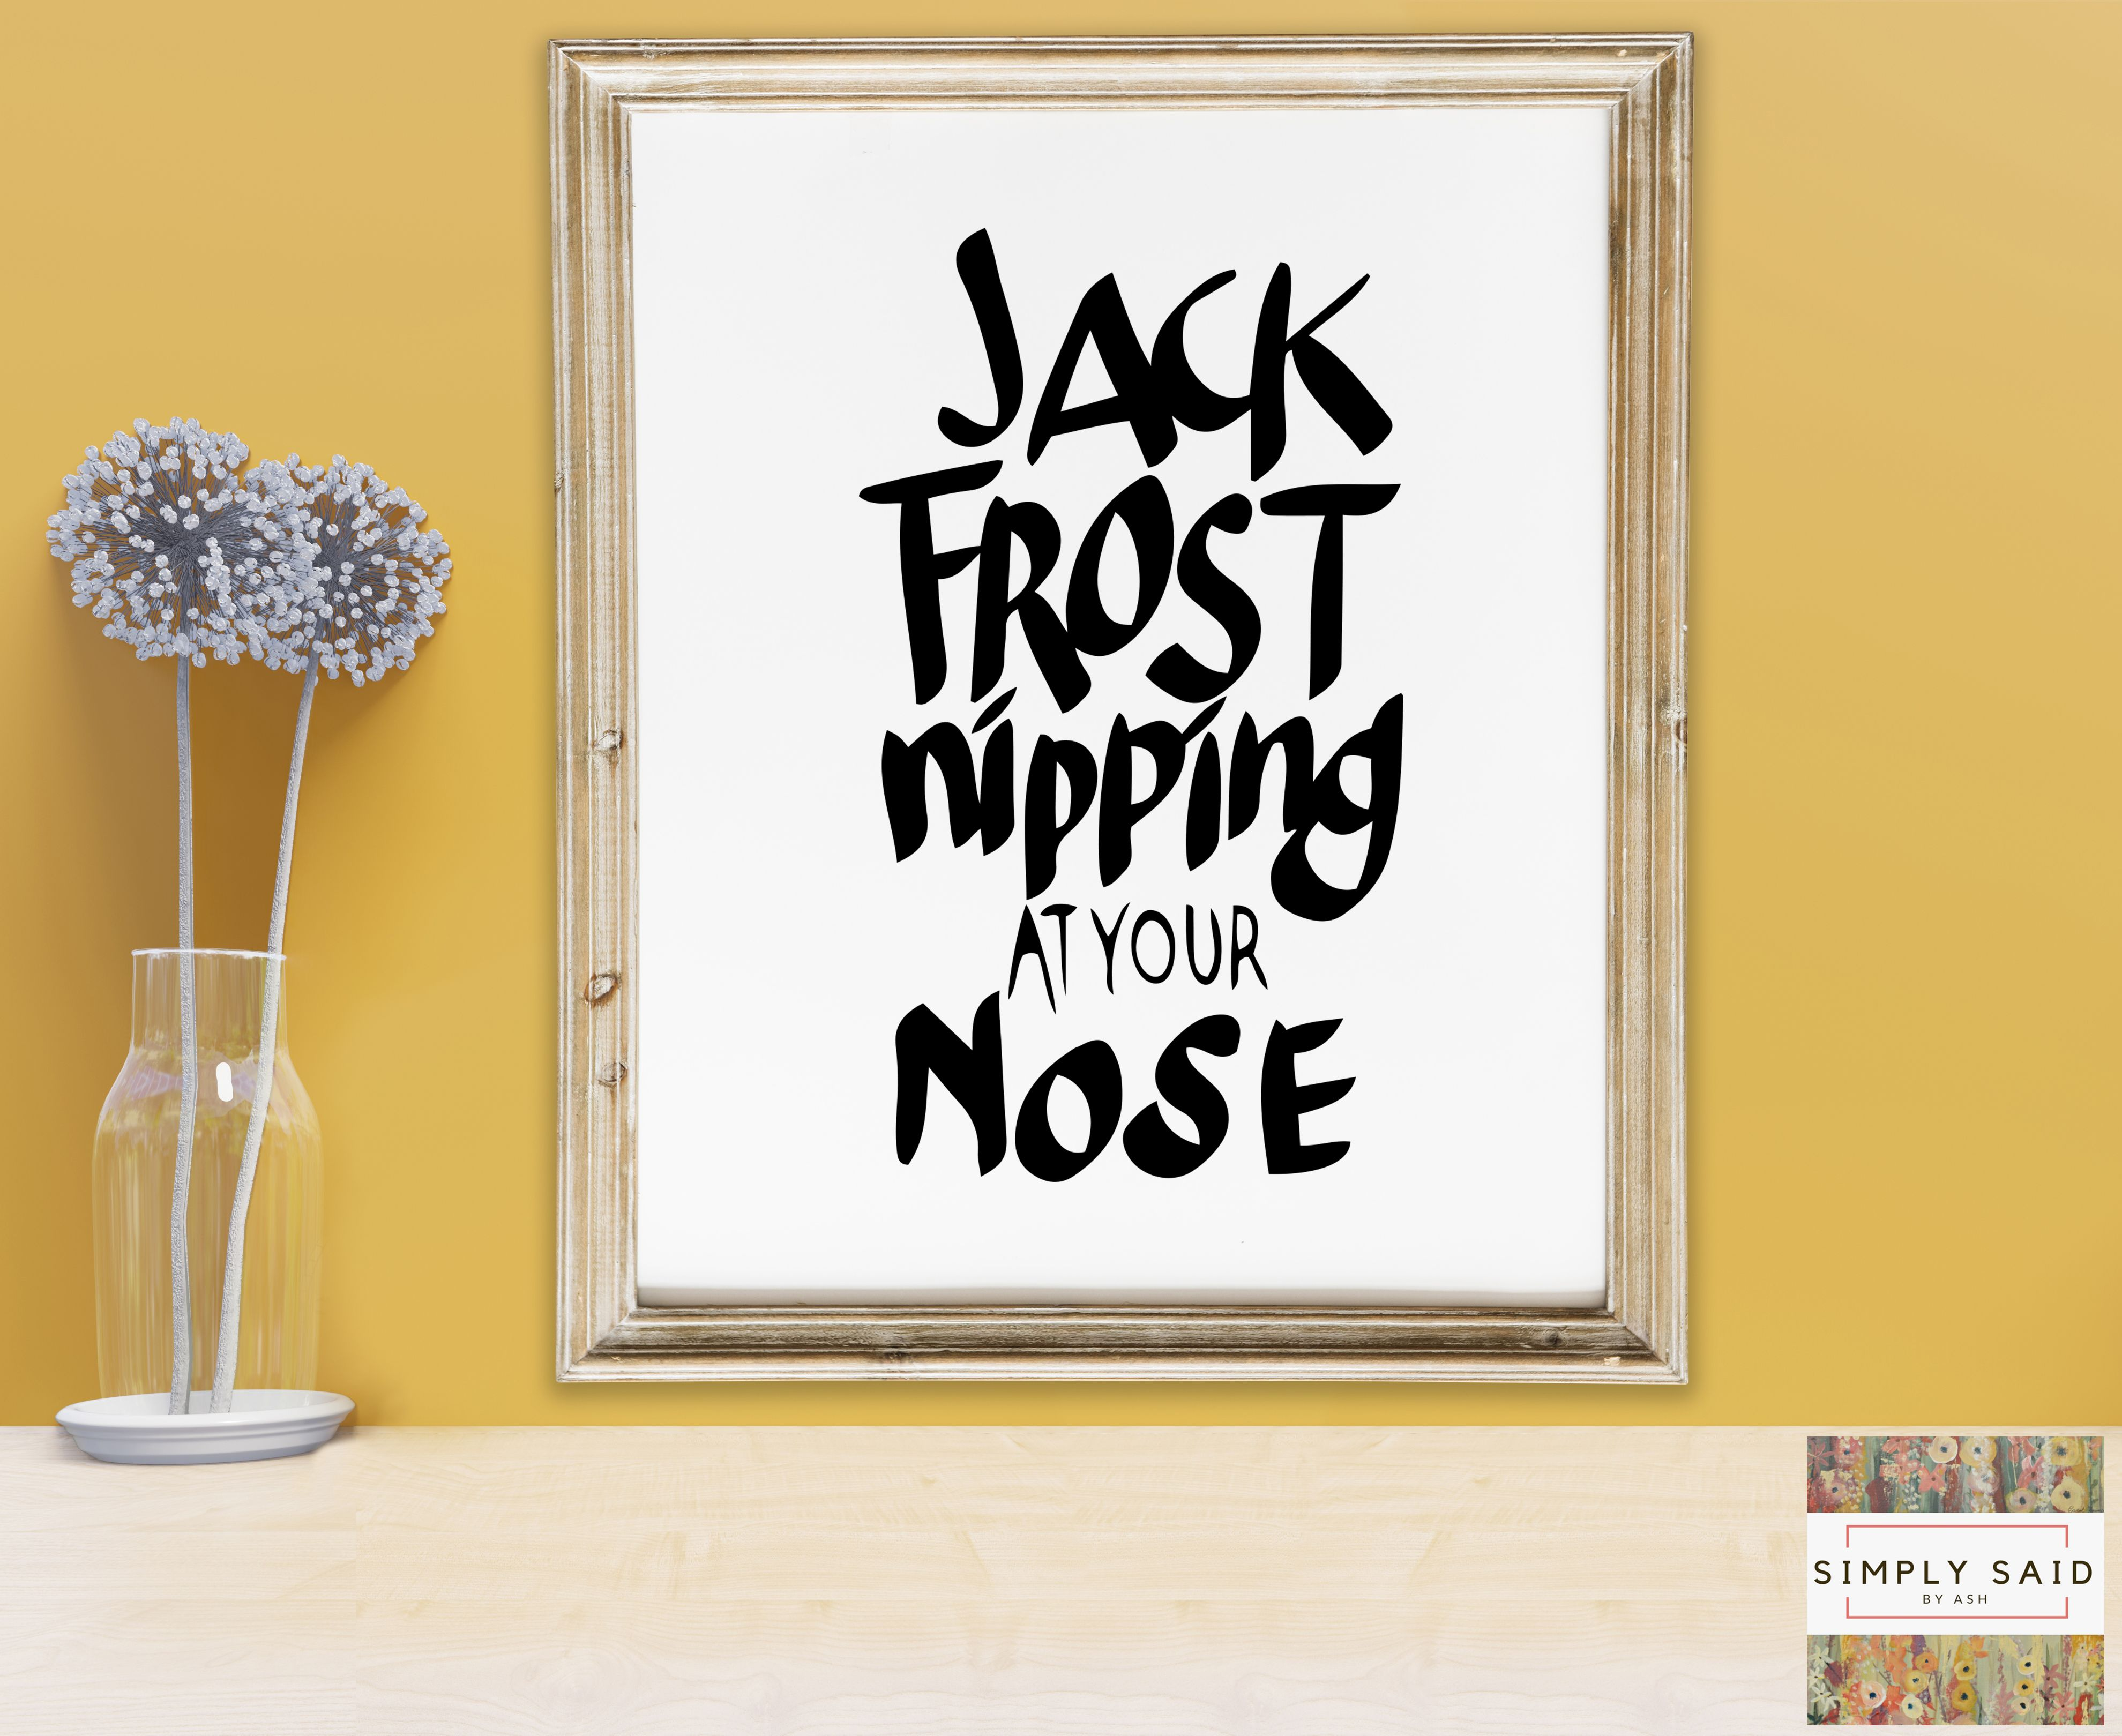 Jack Frost Nipping At Your Nose Svg Zip File Containing Svg Etsy Christmas Quotes Printable Jack Frost Christmas Quotes